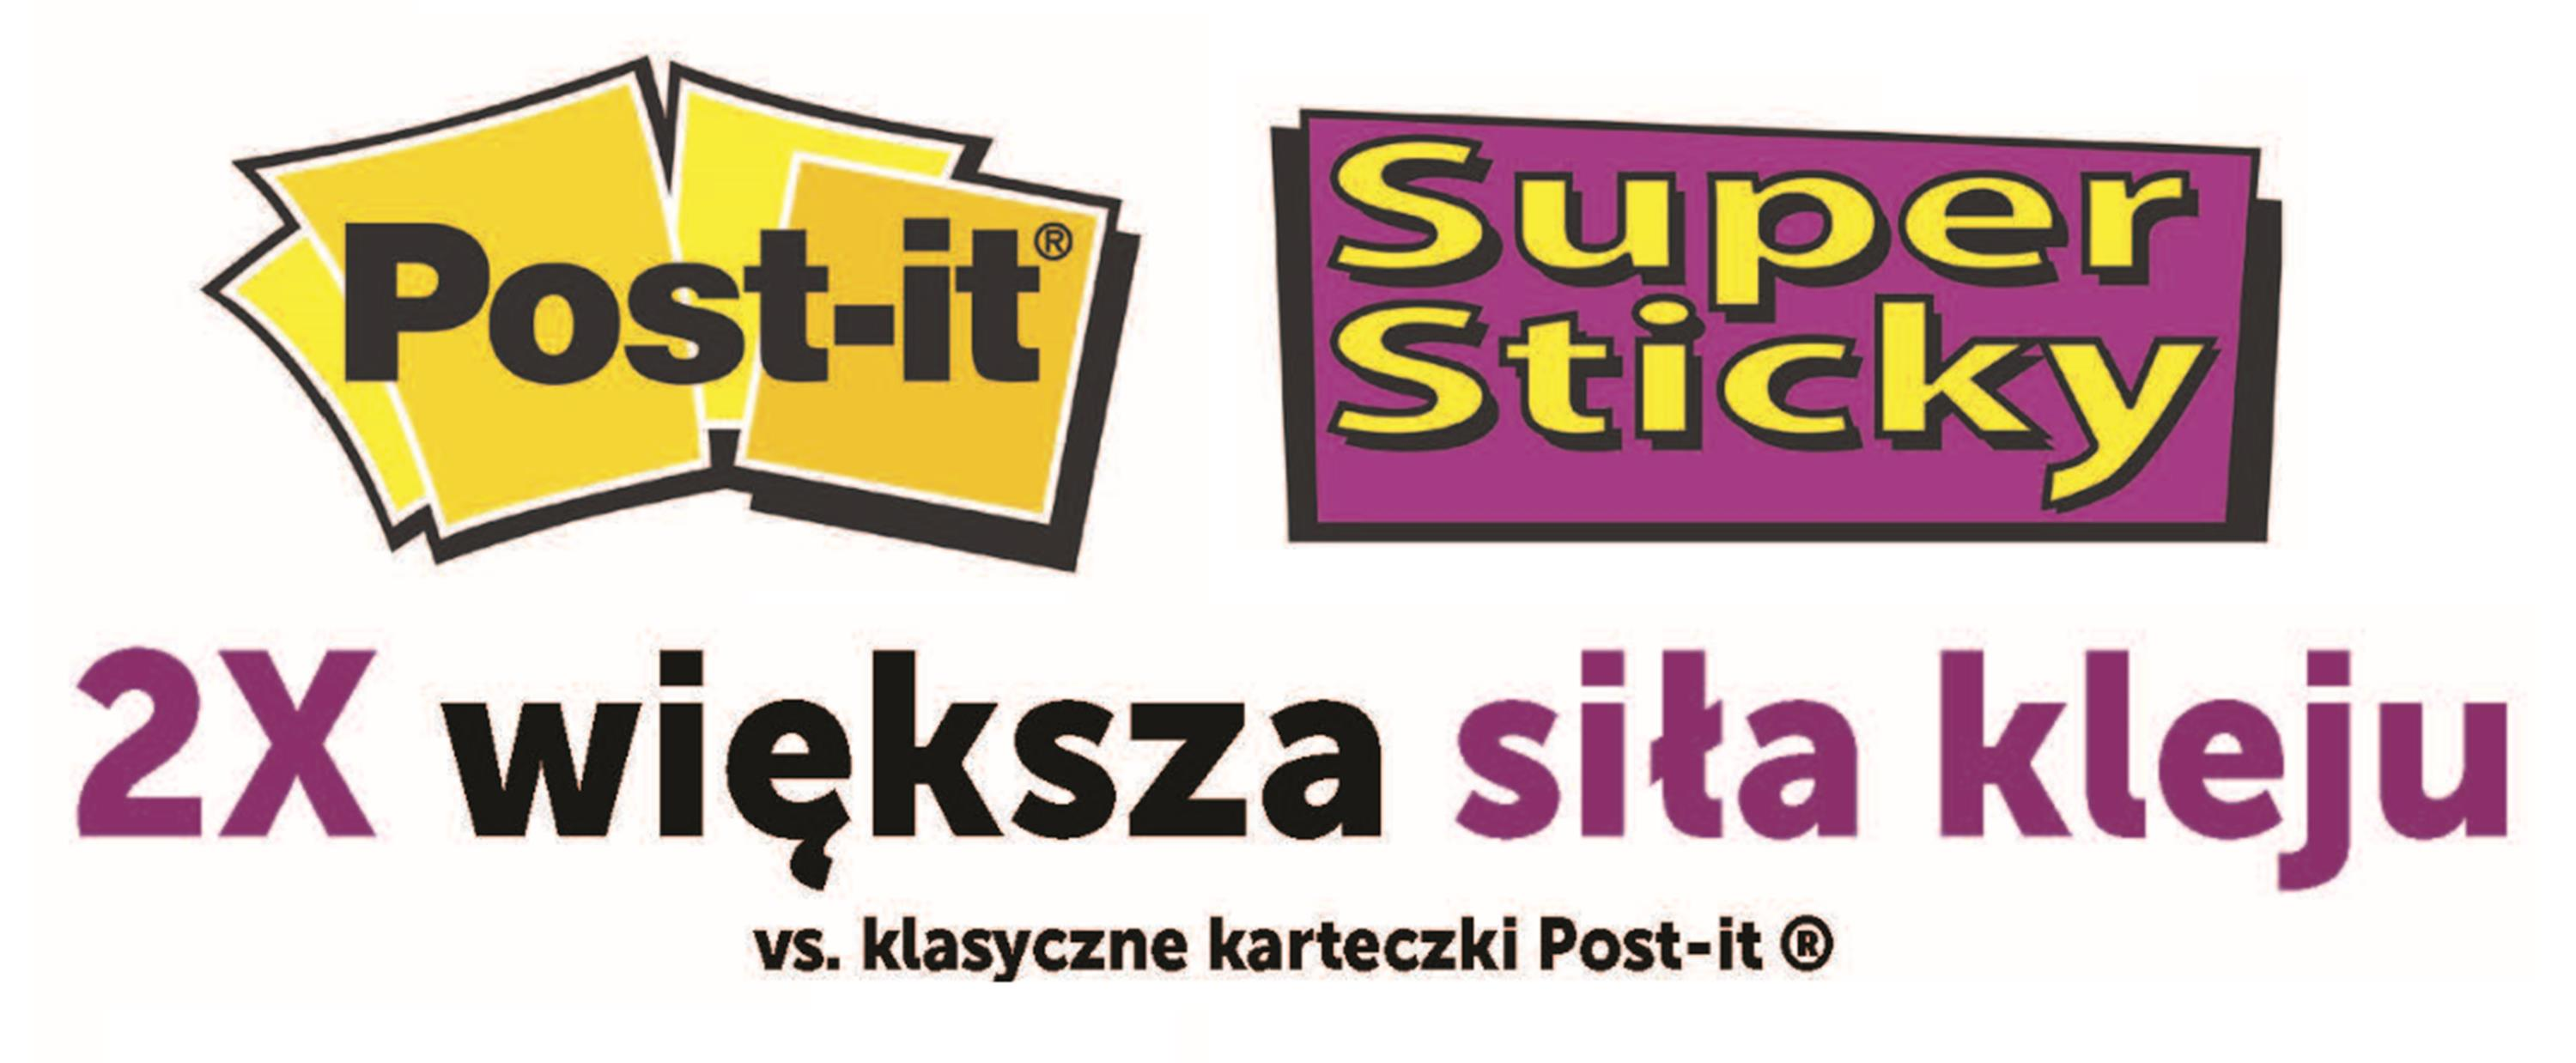 Super sticky karteczki post-it